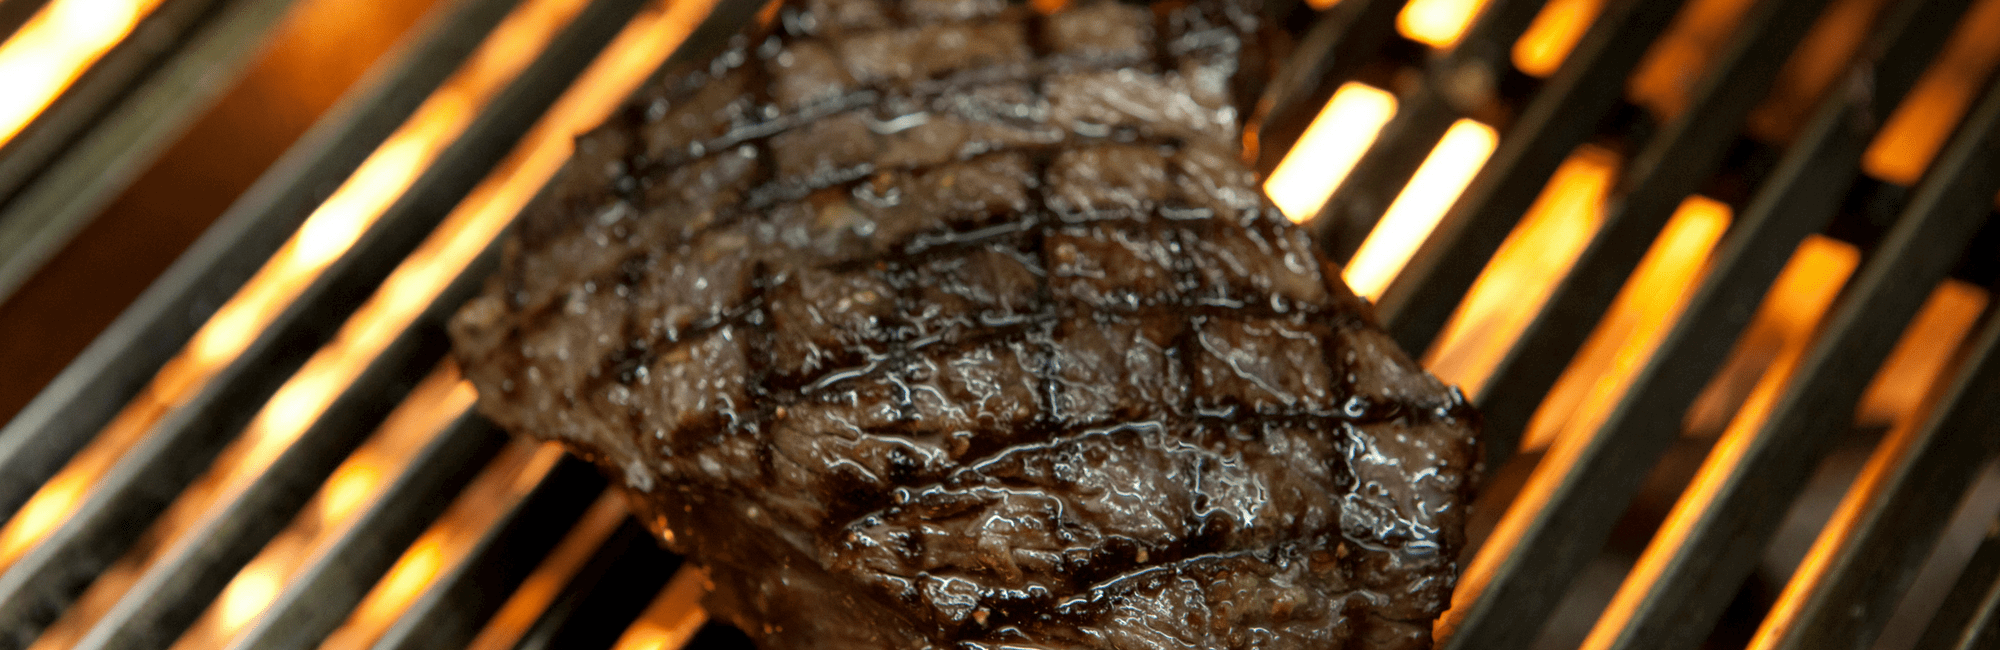 Steak cooked on the Argentinian Grill at 34 Mayfair, a Steak Restaurant in London Mayfair